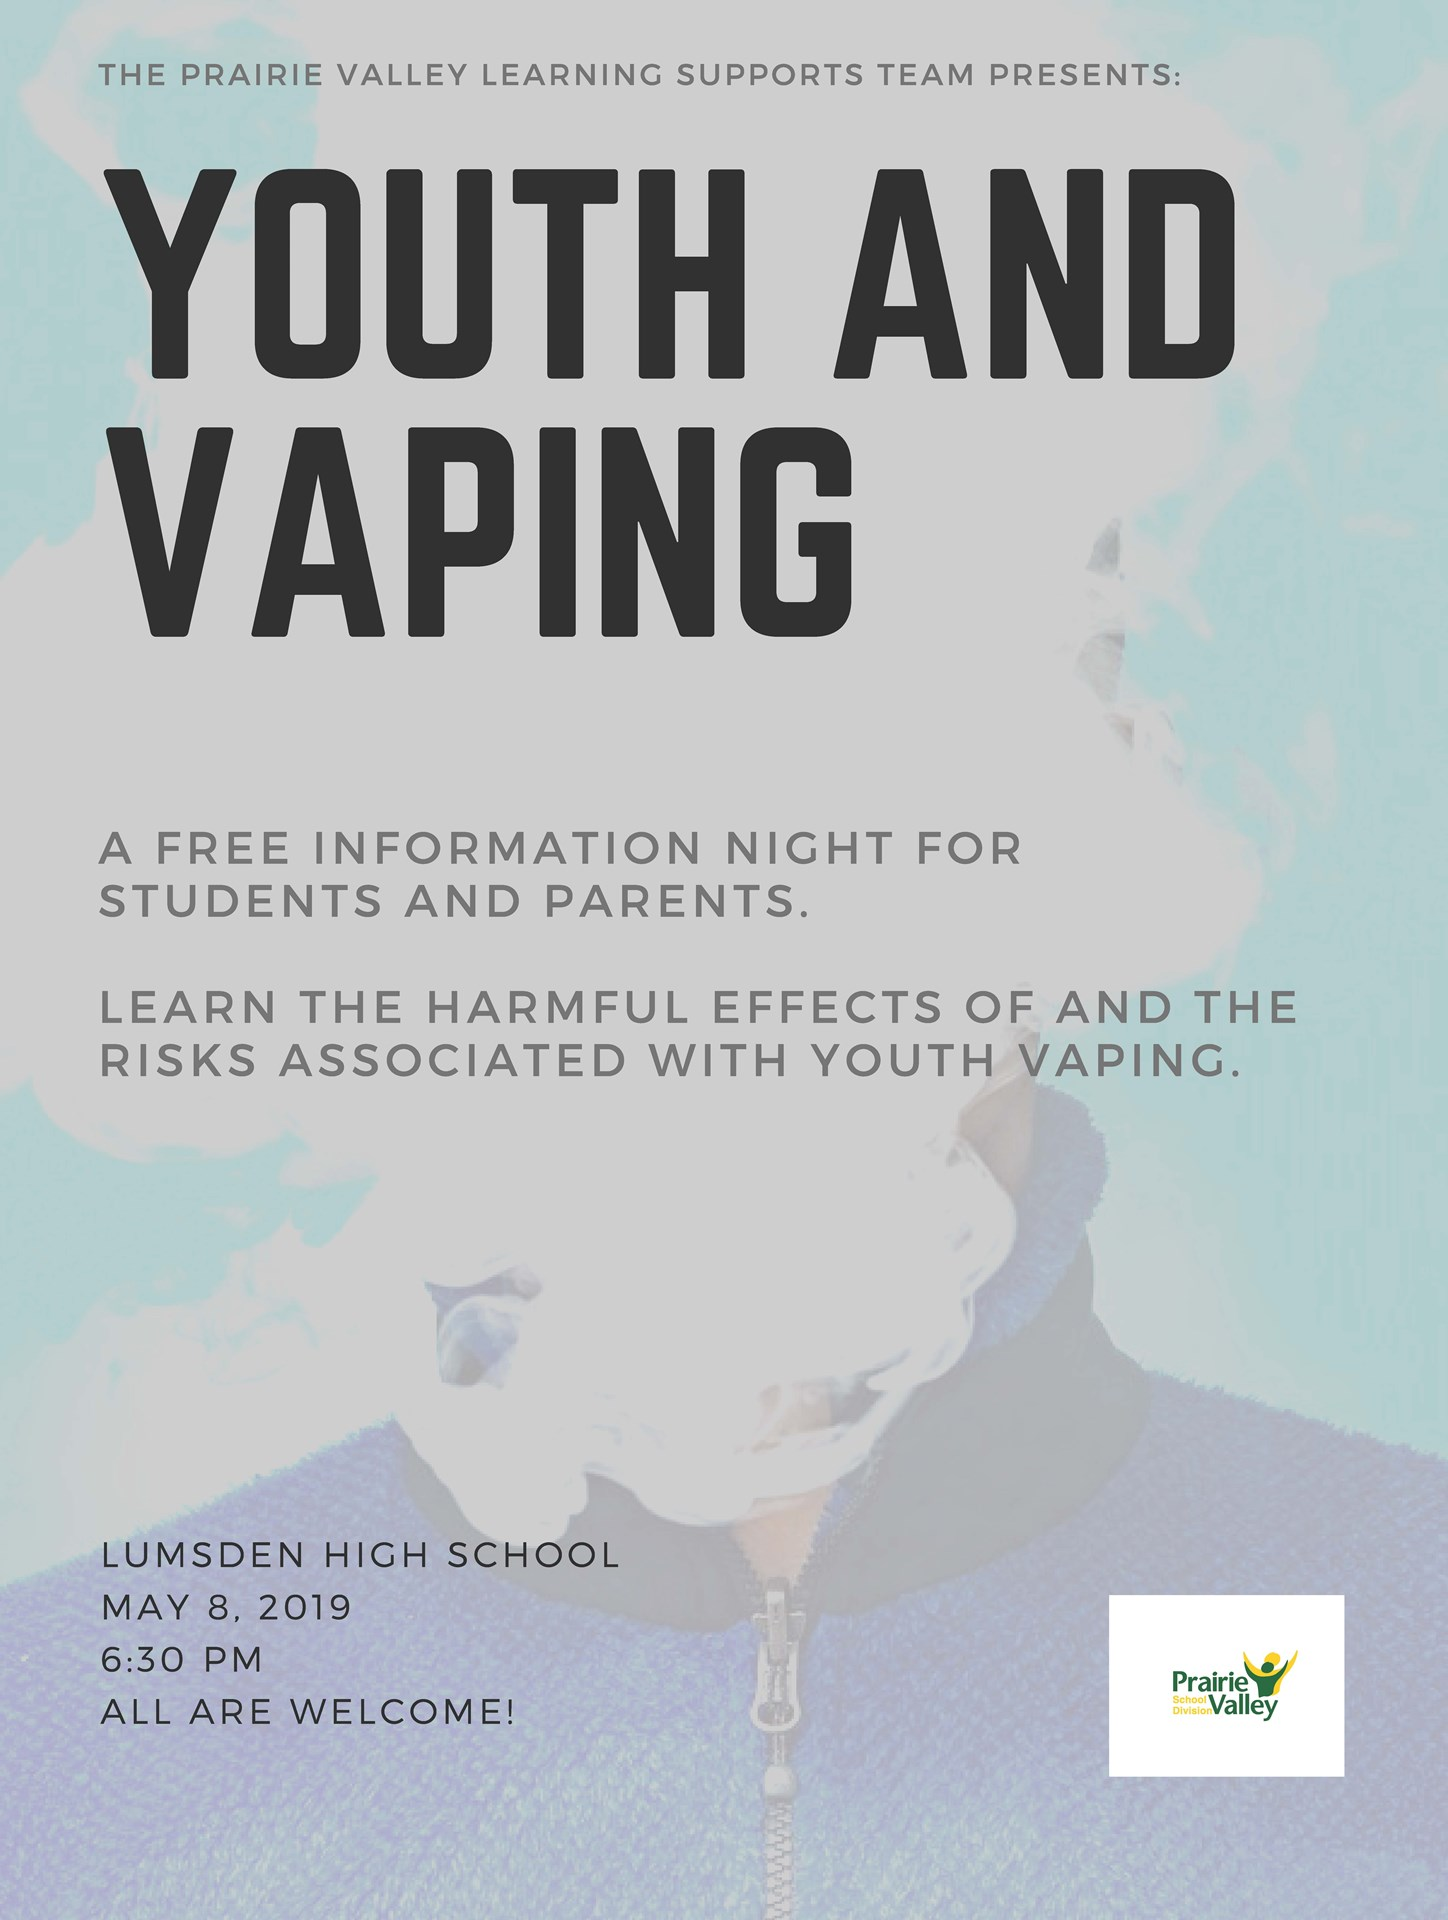 Youth and Vaping Poster Lumsden High  4 (003).jpg